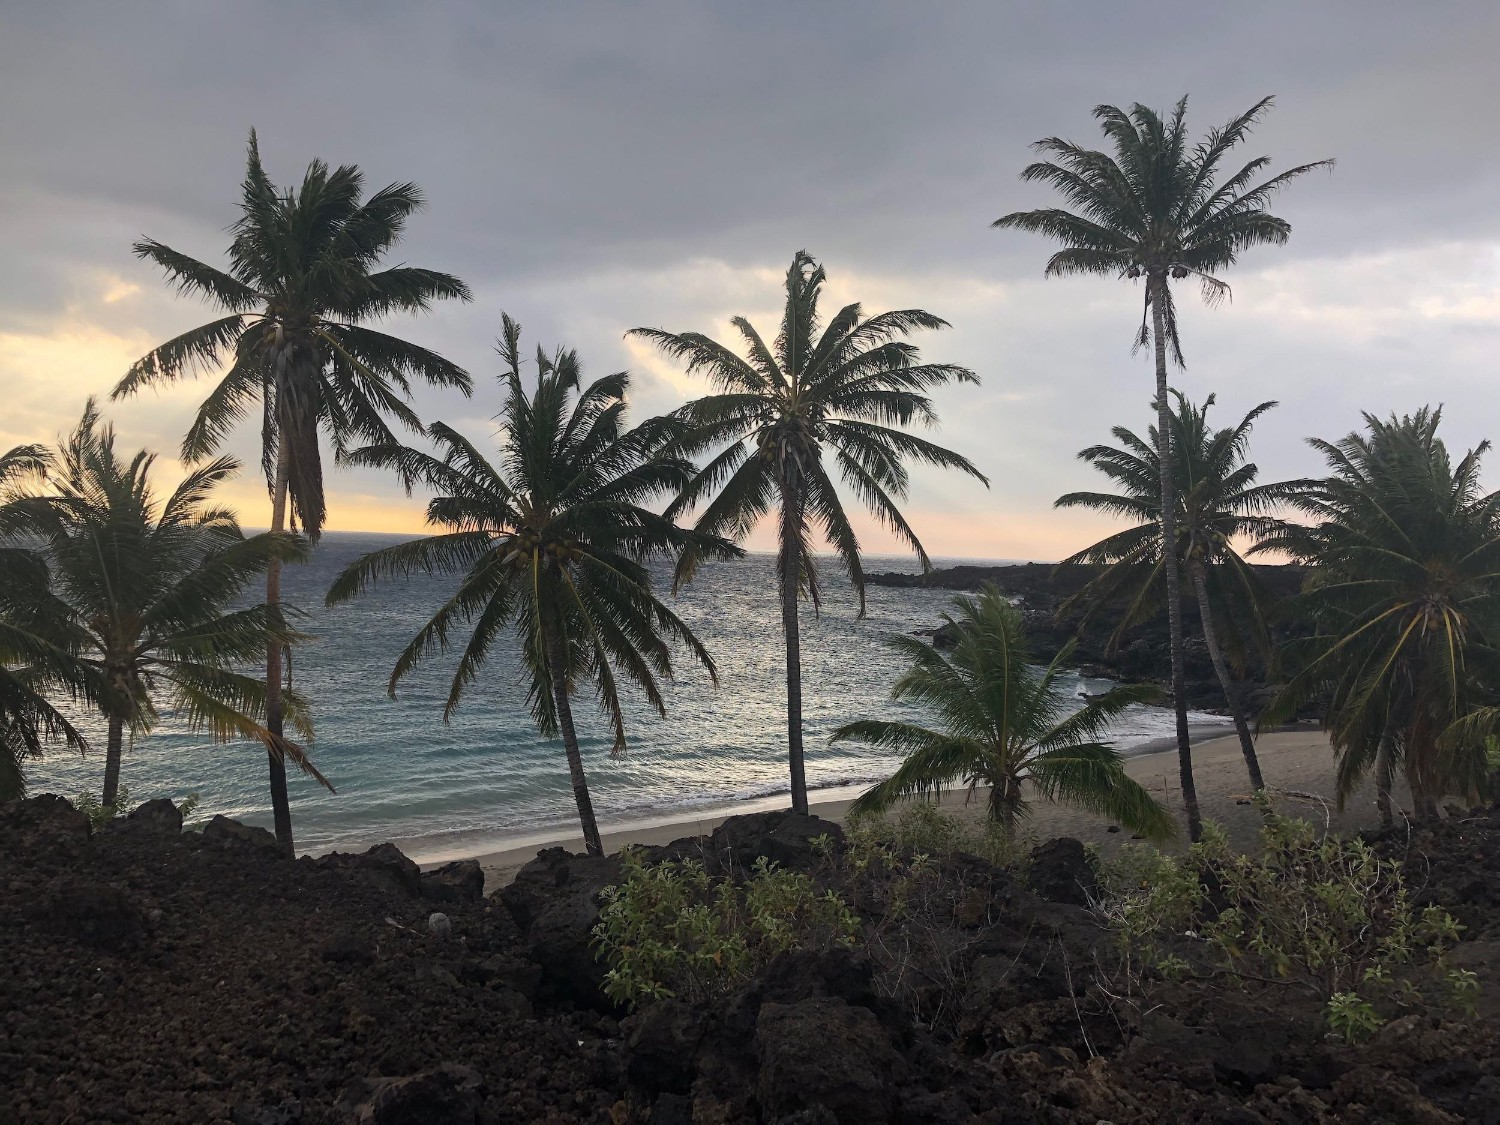 View of Secret beach in Ocean View at sunset, Hawaii. boldlygotravel.com